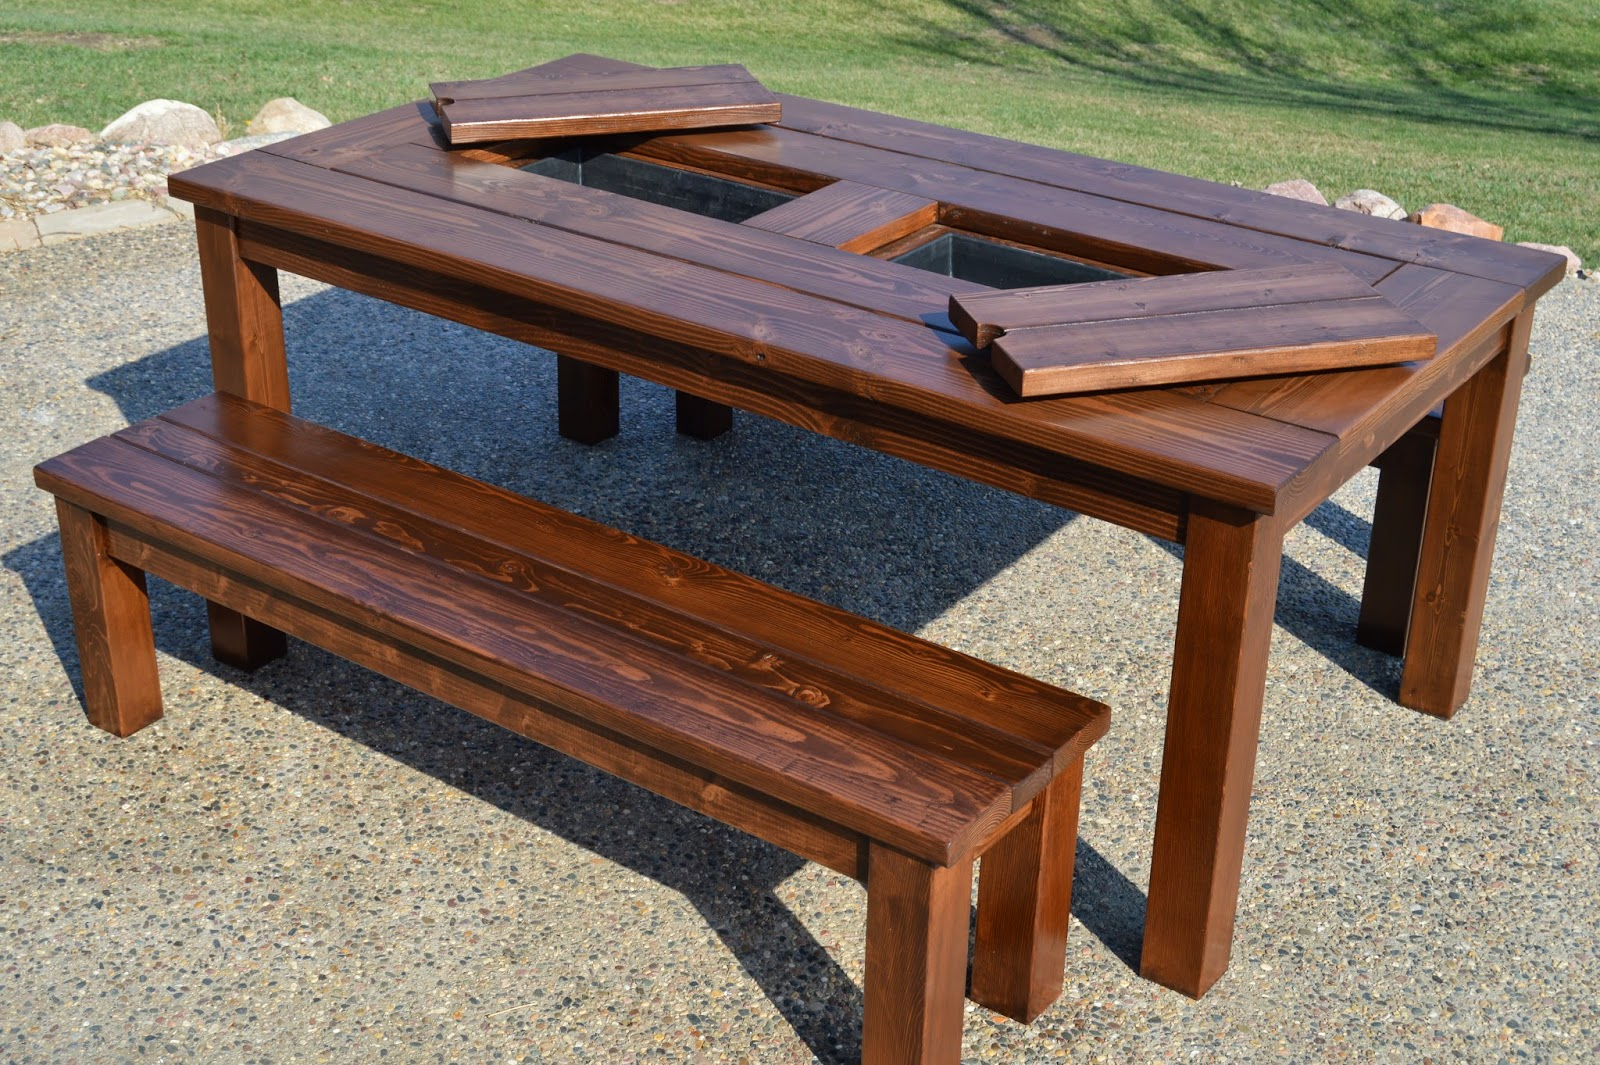 Building Plans: Patio Table With Built-in